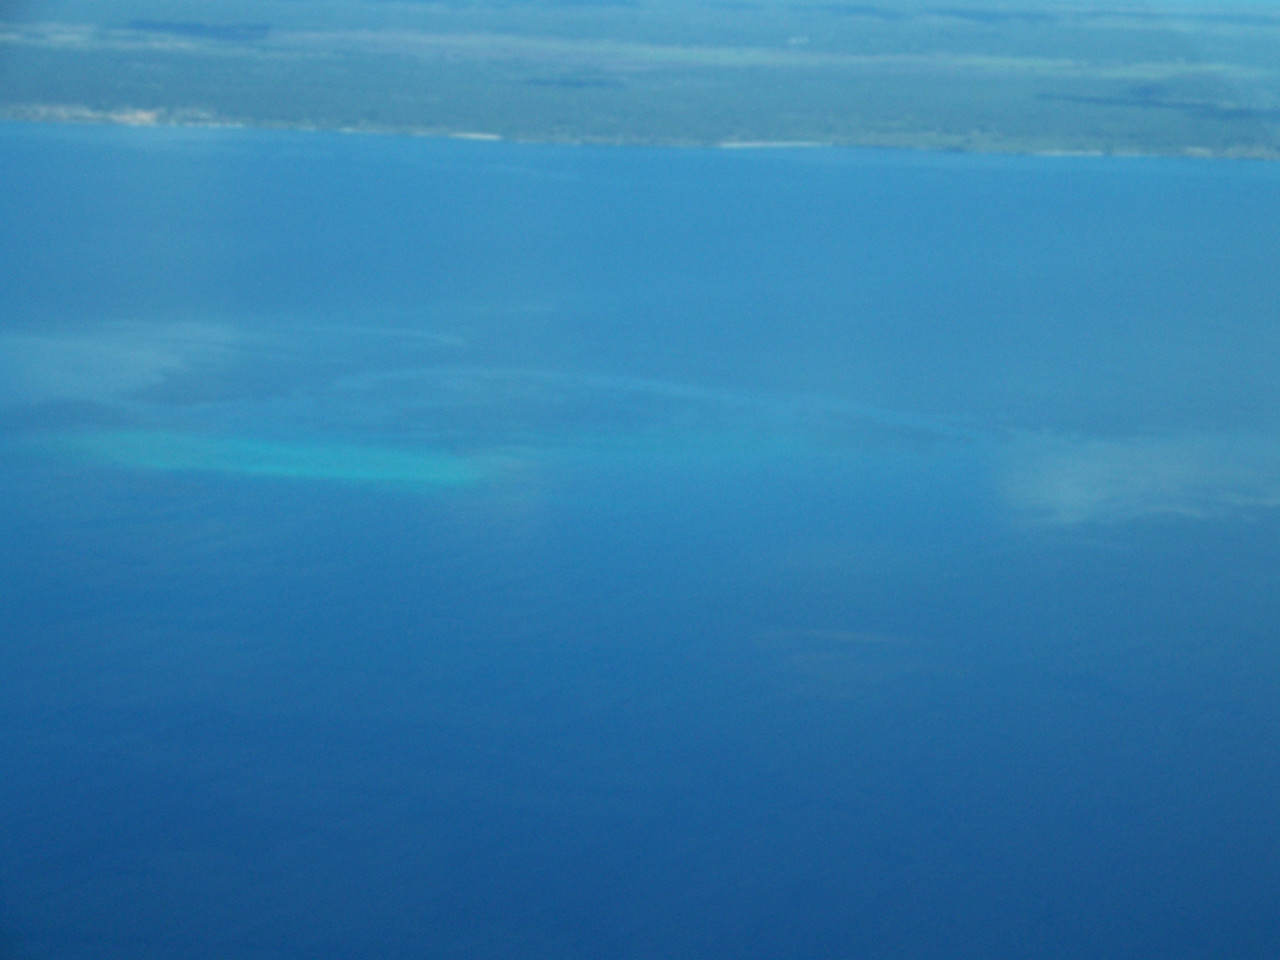 0973 - View of Ocean Between Mainland Tanzania and the Island of Zanzibar from ZanAir Flight Arusha to Zanzibar - Tanzania.JPG